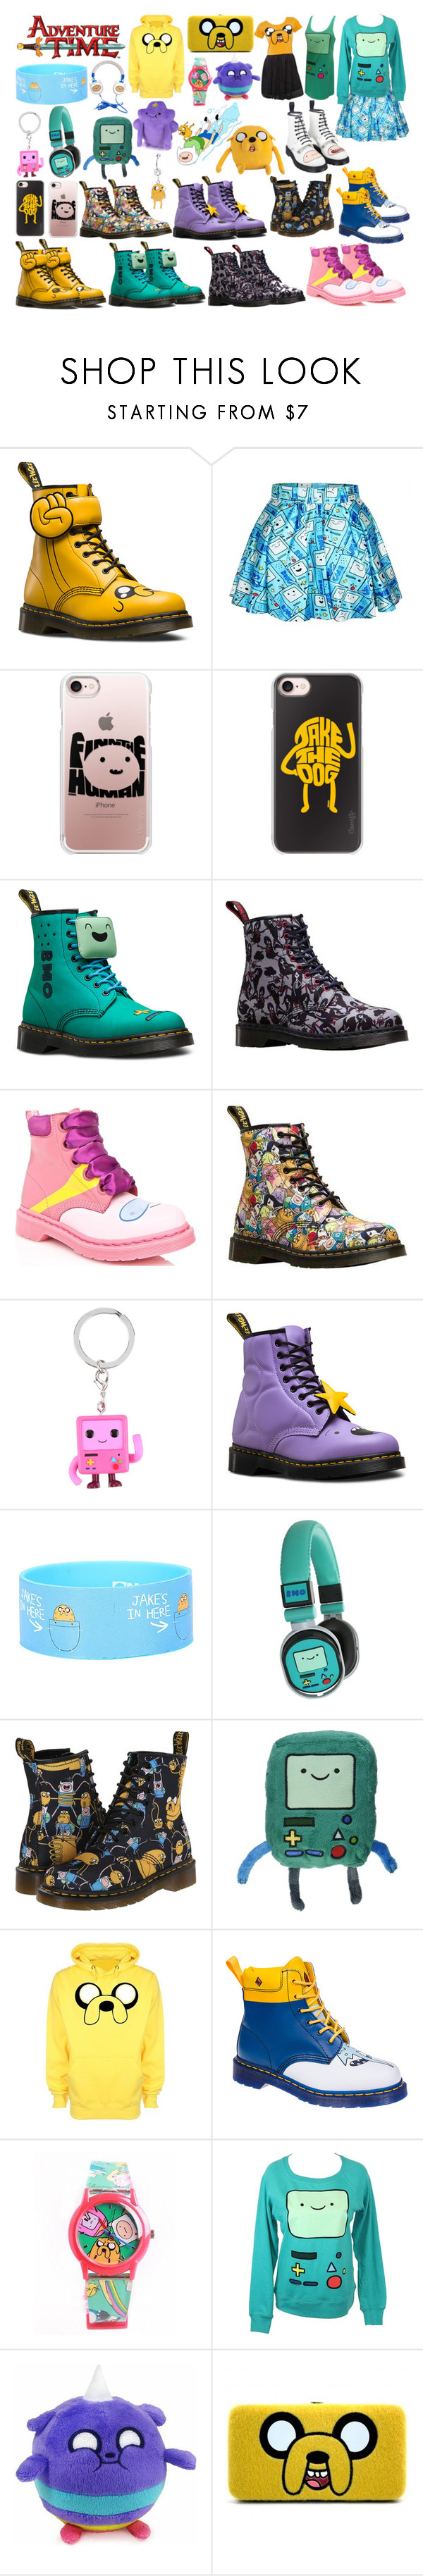 """""""Sans titre #307"""" by kokoxpops ❤ liked on Polyvore featuring Dr. Martens, Casetify, Cartoon Network, CO and adventuretime"""